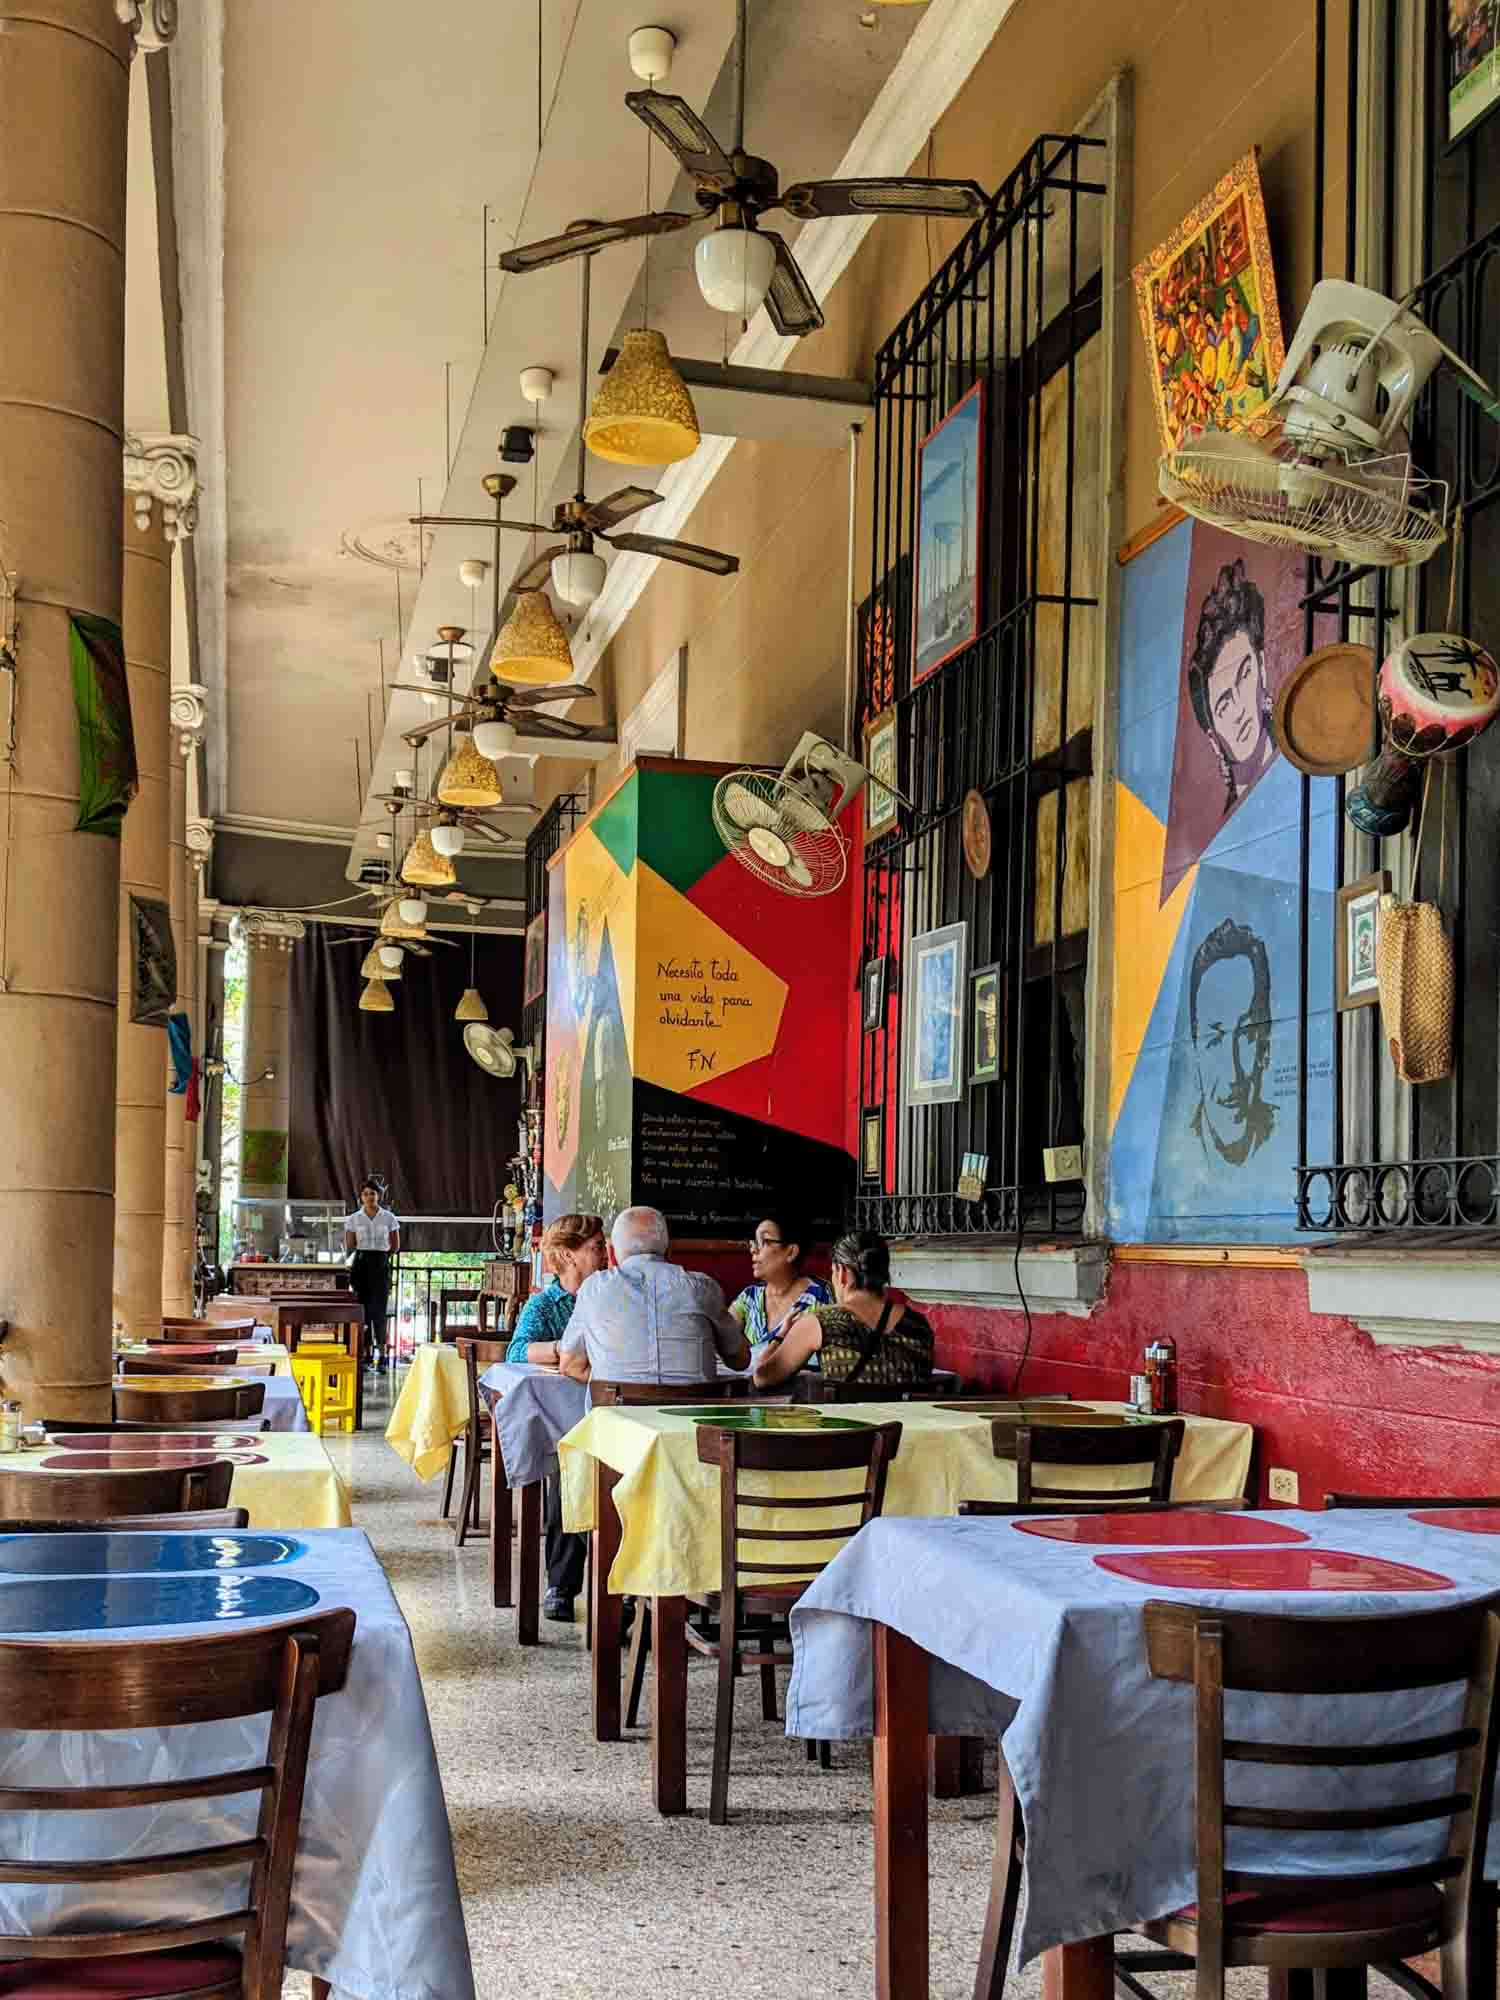 Iranian restaurant Topoly terrace in the Vedado neighbourhood of Havana.